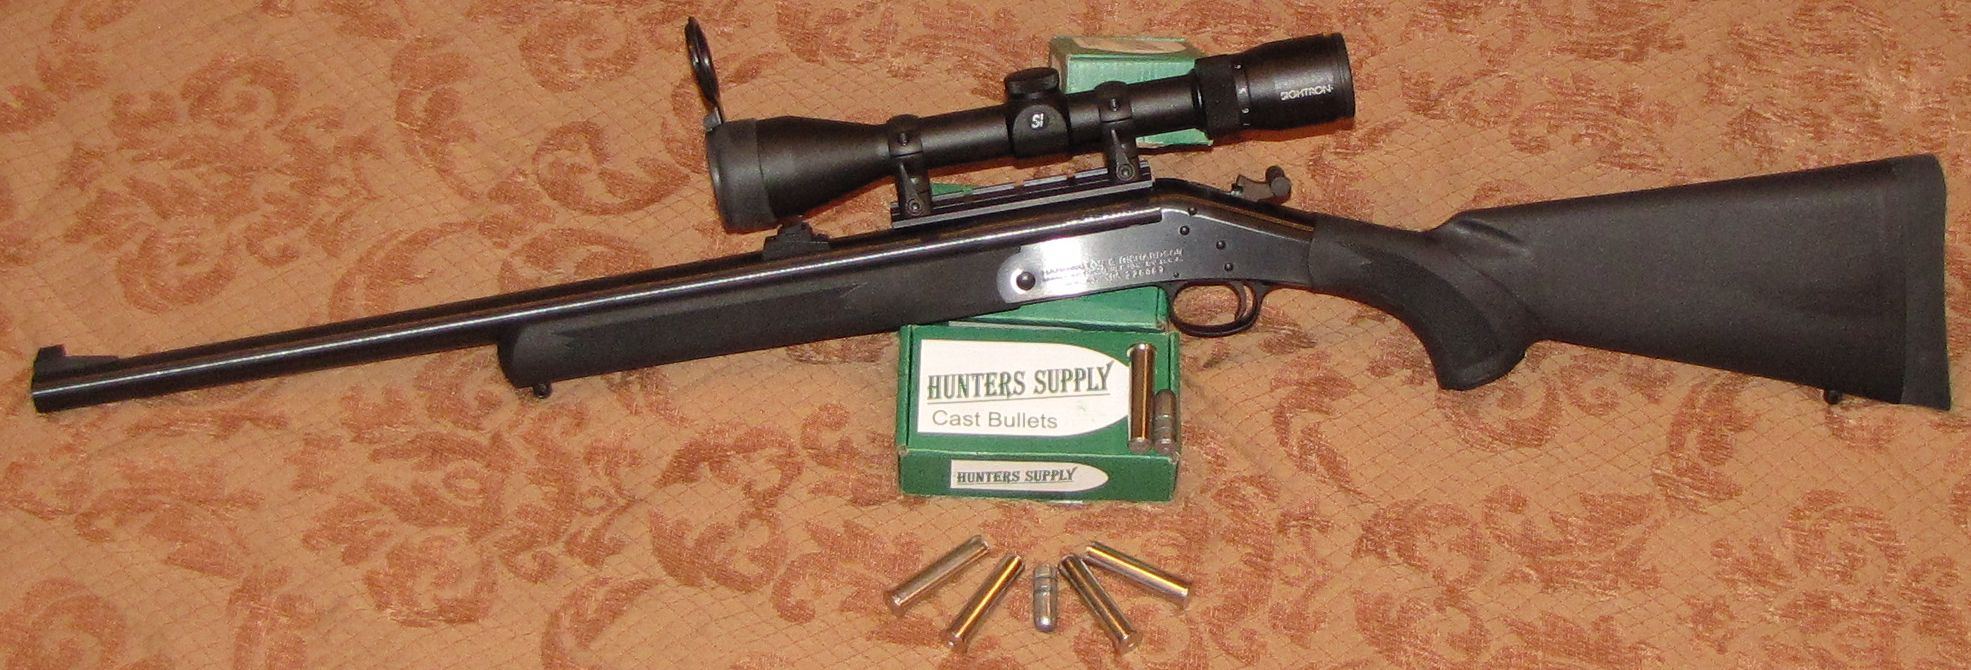 Quiet Without the Can – Hunting Quietly Without a Suppressor | Jack